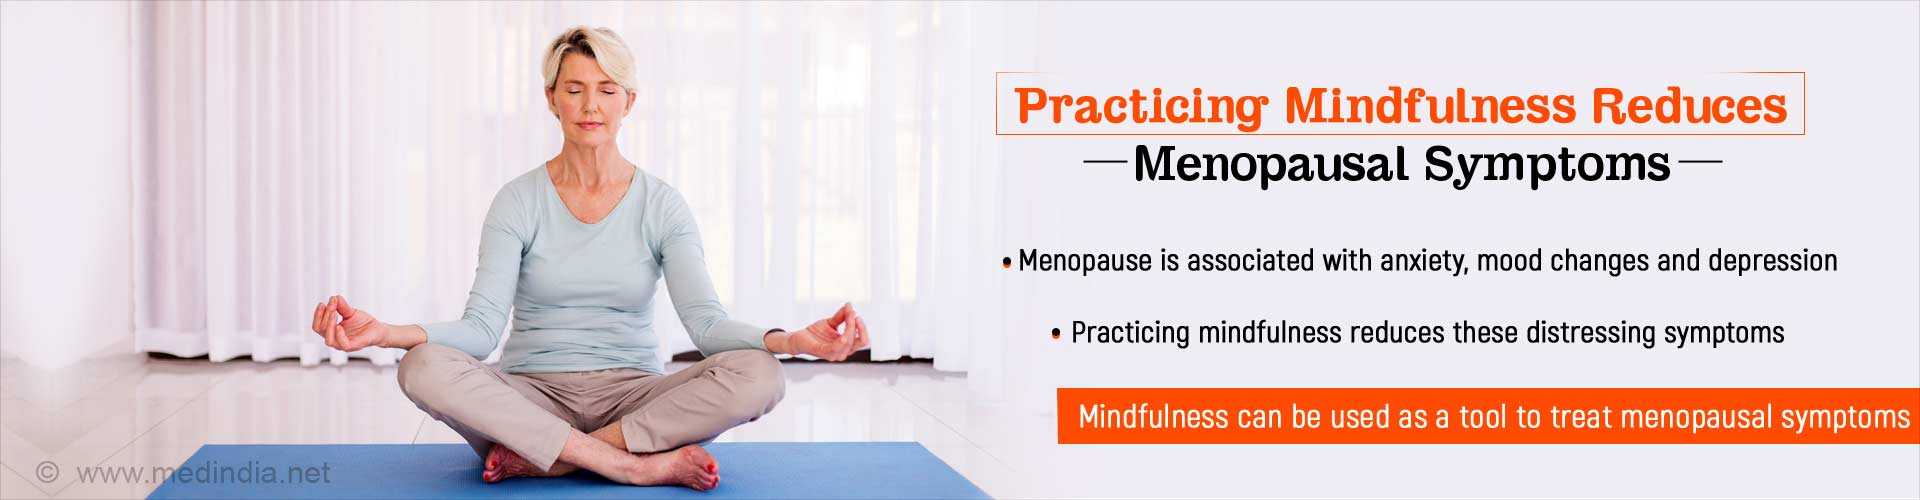 Practicing mindfulness reduces menopausal symptoms. Menopause is associated with anxiety, mood changes and depression. Practicing mindfulness reduces these distressing symptoms. Mindfulness can be used as a tool to treat menopausal symptoms.